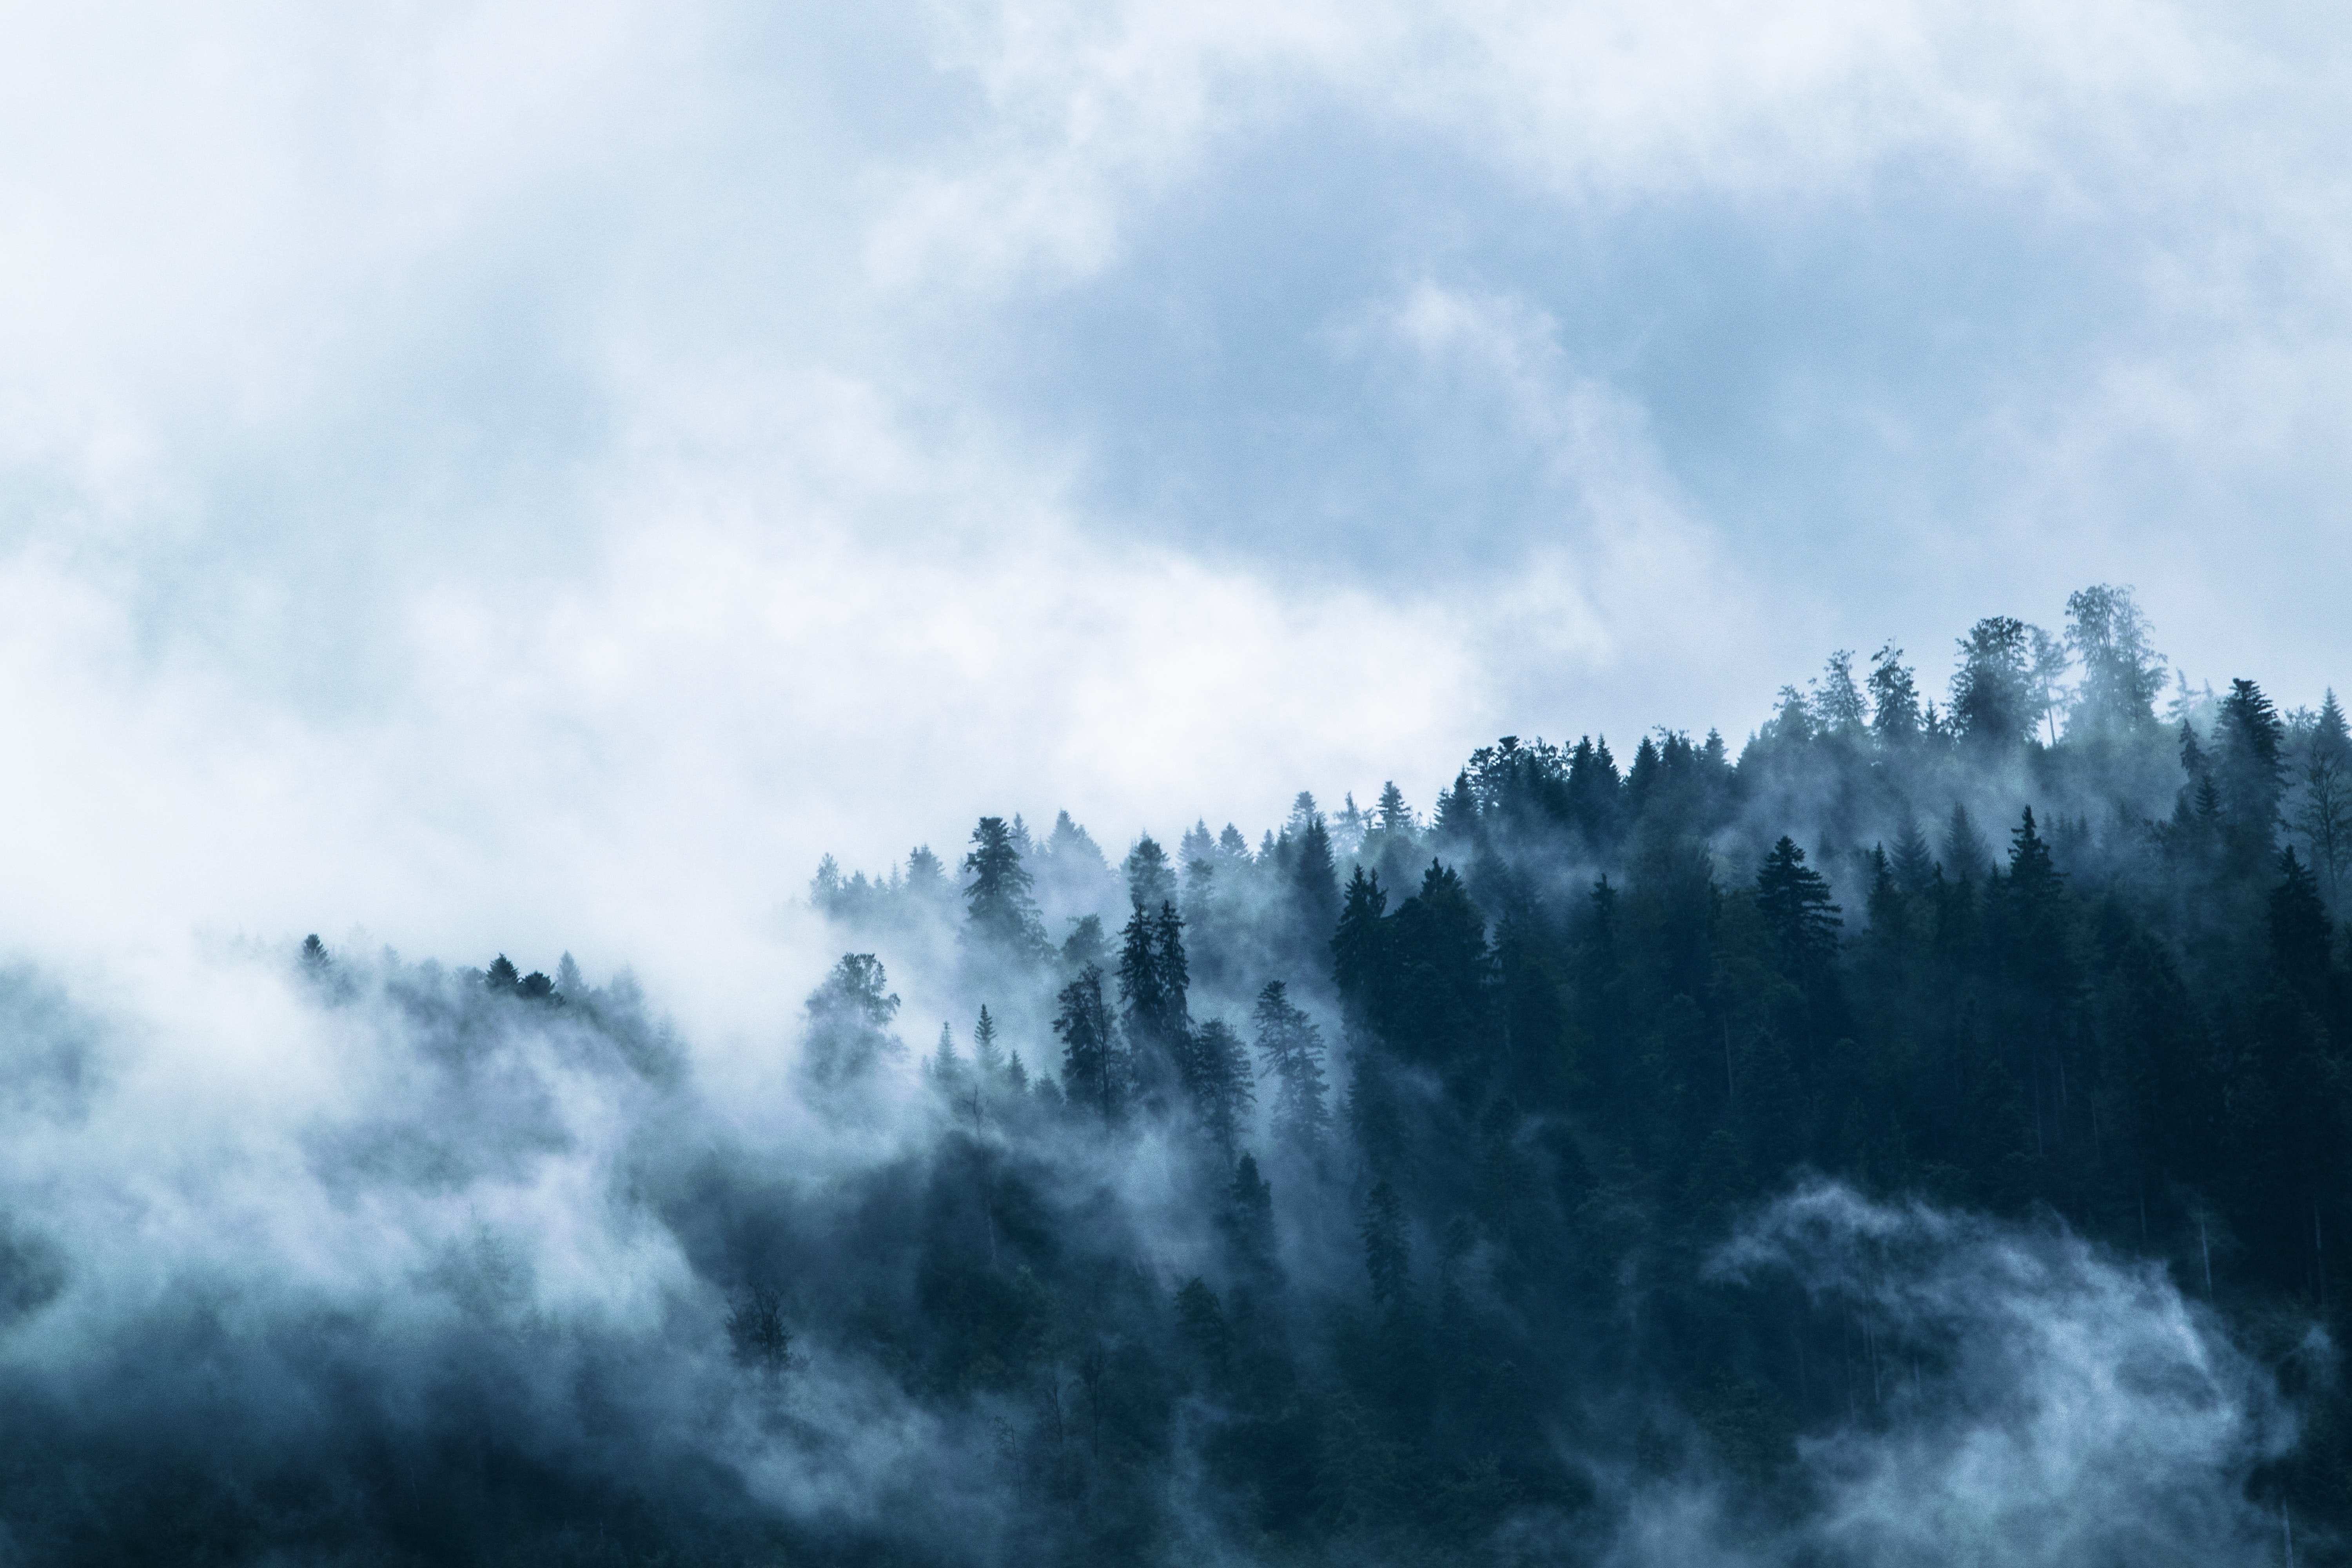 Trees With Fog, Clouds, Misty, Wilderness, Trees, HQ Photo